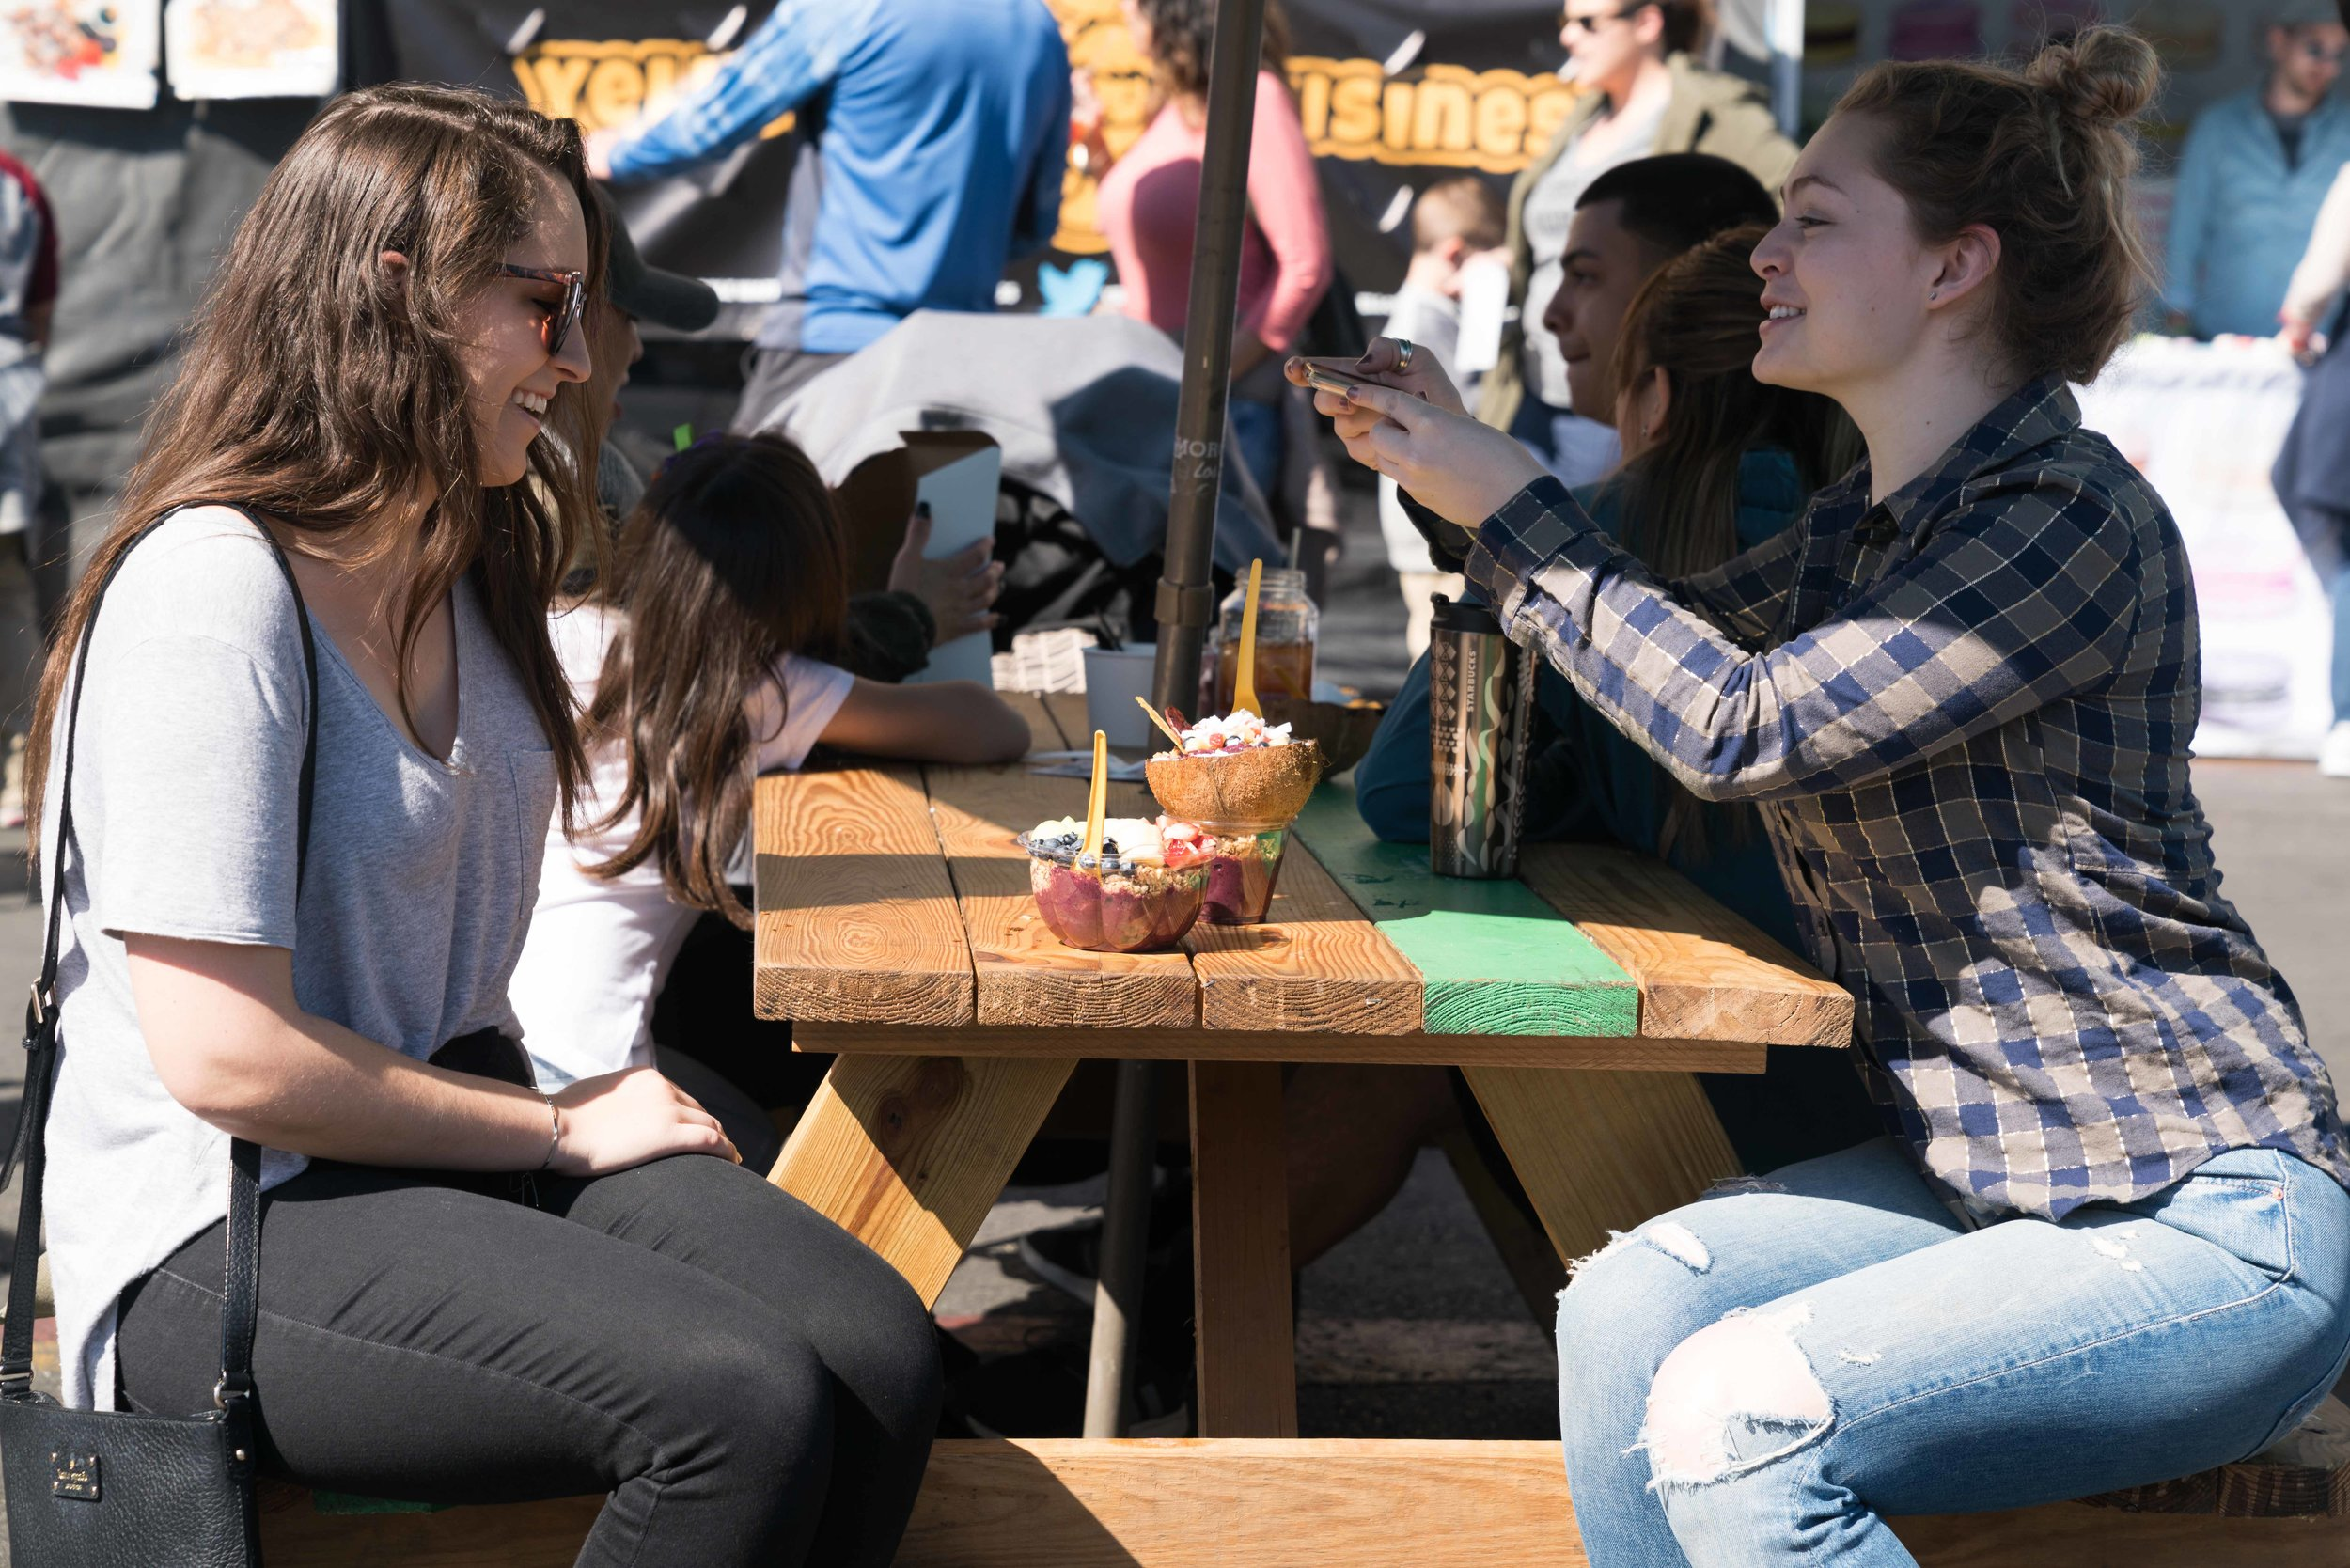 Amanda Slate (right) and Erika VonNovak (left) takes pictures of their coconut bowls from Amazeballs on Sunday, February 25, 2018 at Smorgasburg LA, a weekly food and vendor market on Sundays at Row DTLA. (Photo by Helena Sung)